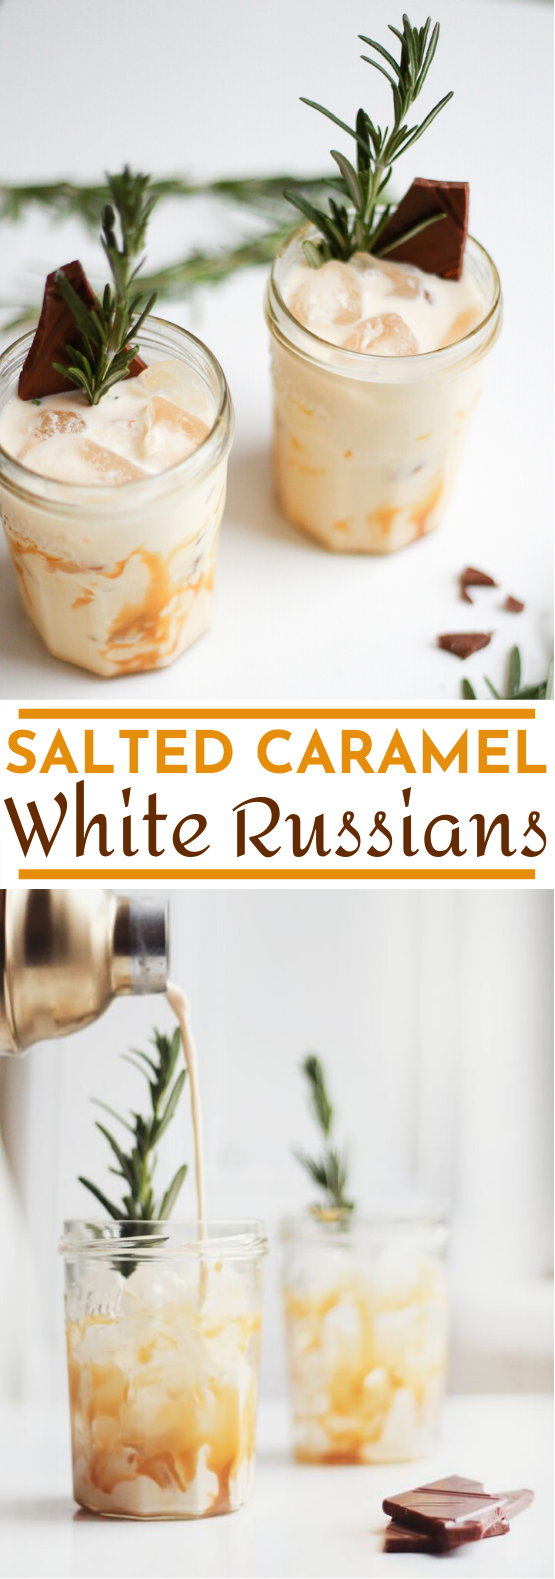 Salted Caramel White Russians #drinks #alcohol #winter #cocktails #christmas